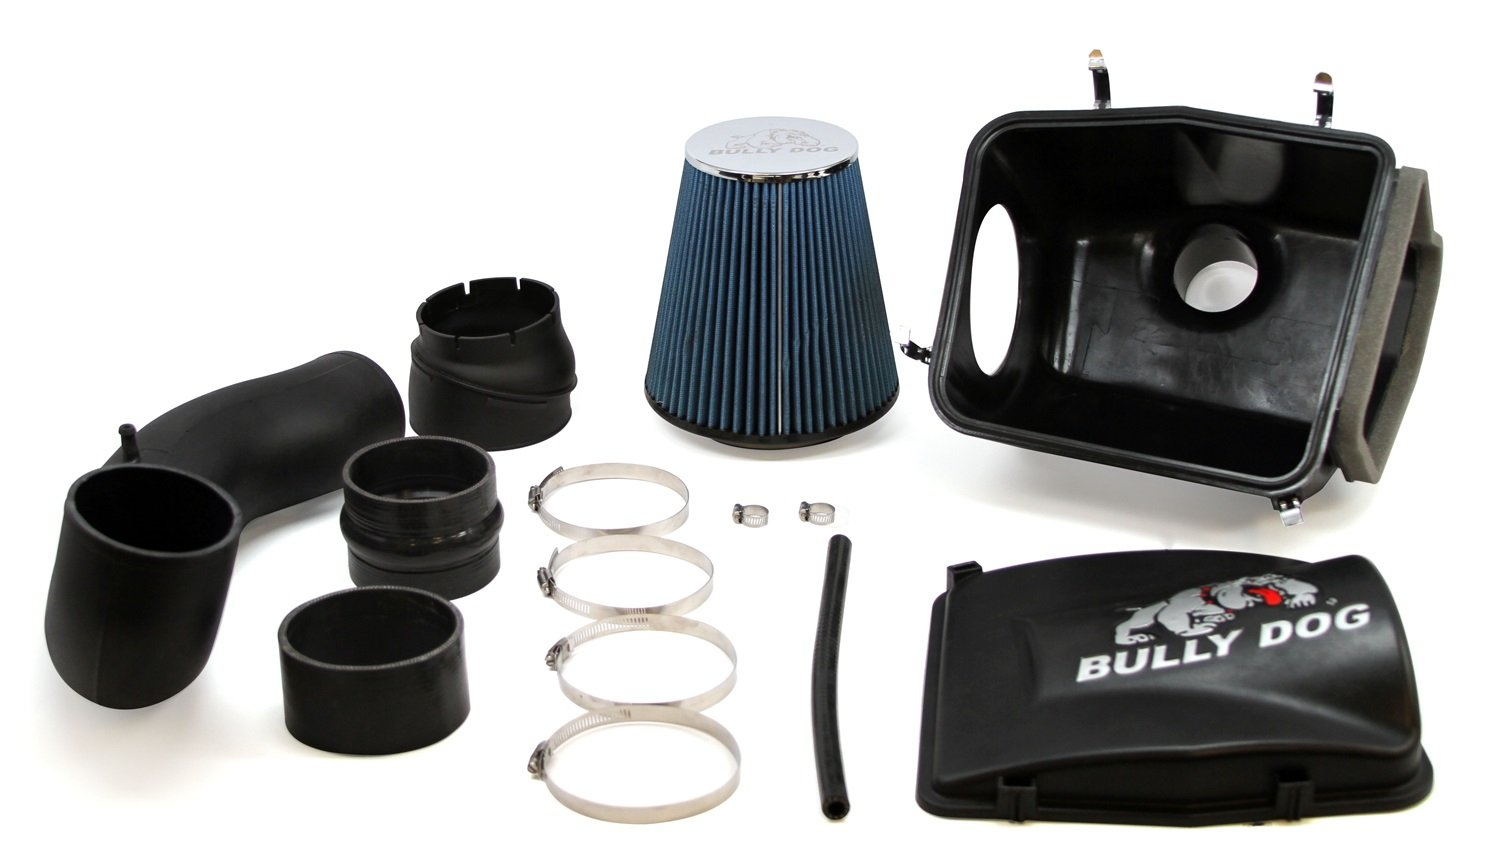 Bully Dog 53252 Stage 2 Rapid Flow Air Intake for GM Pick Up and SUV 4.8L, 5.3L, 6.0L, 6.2L